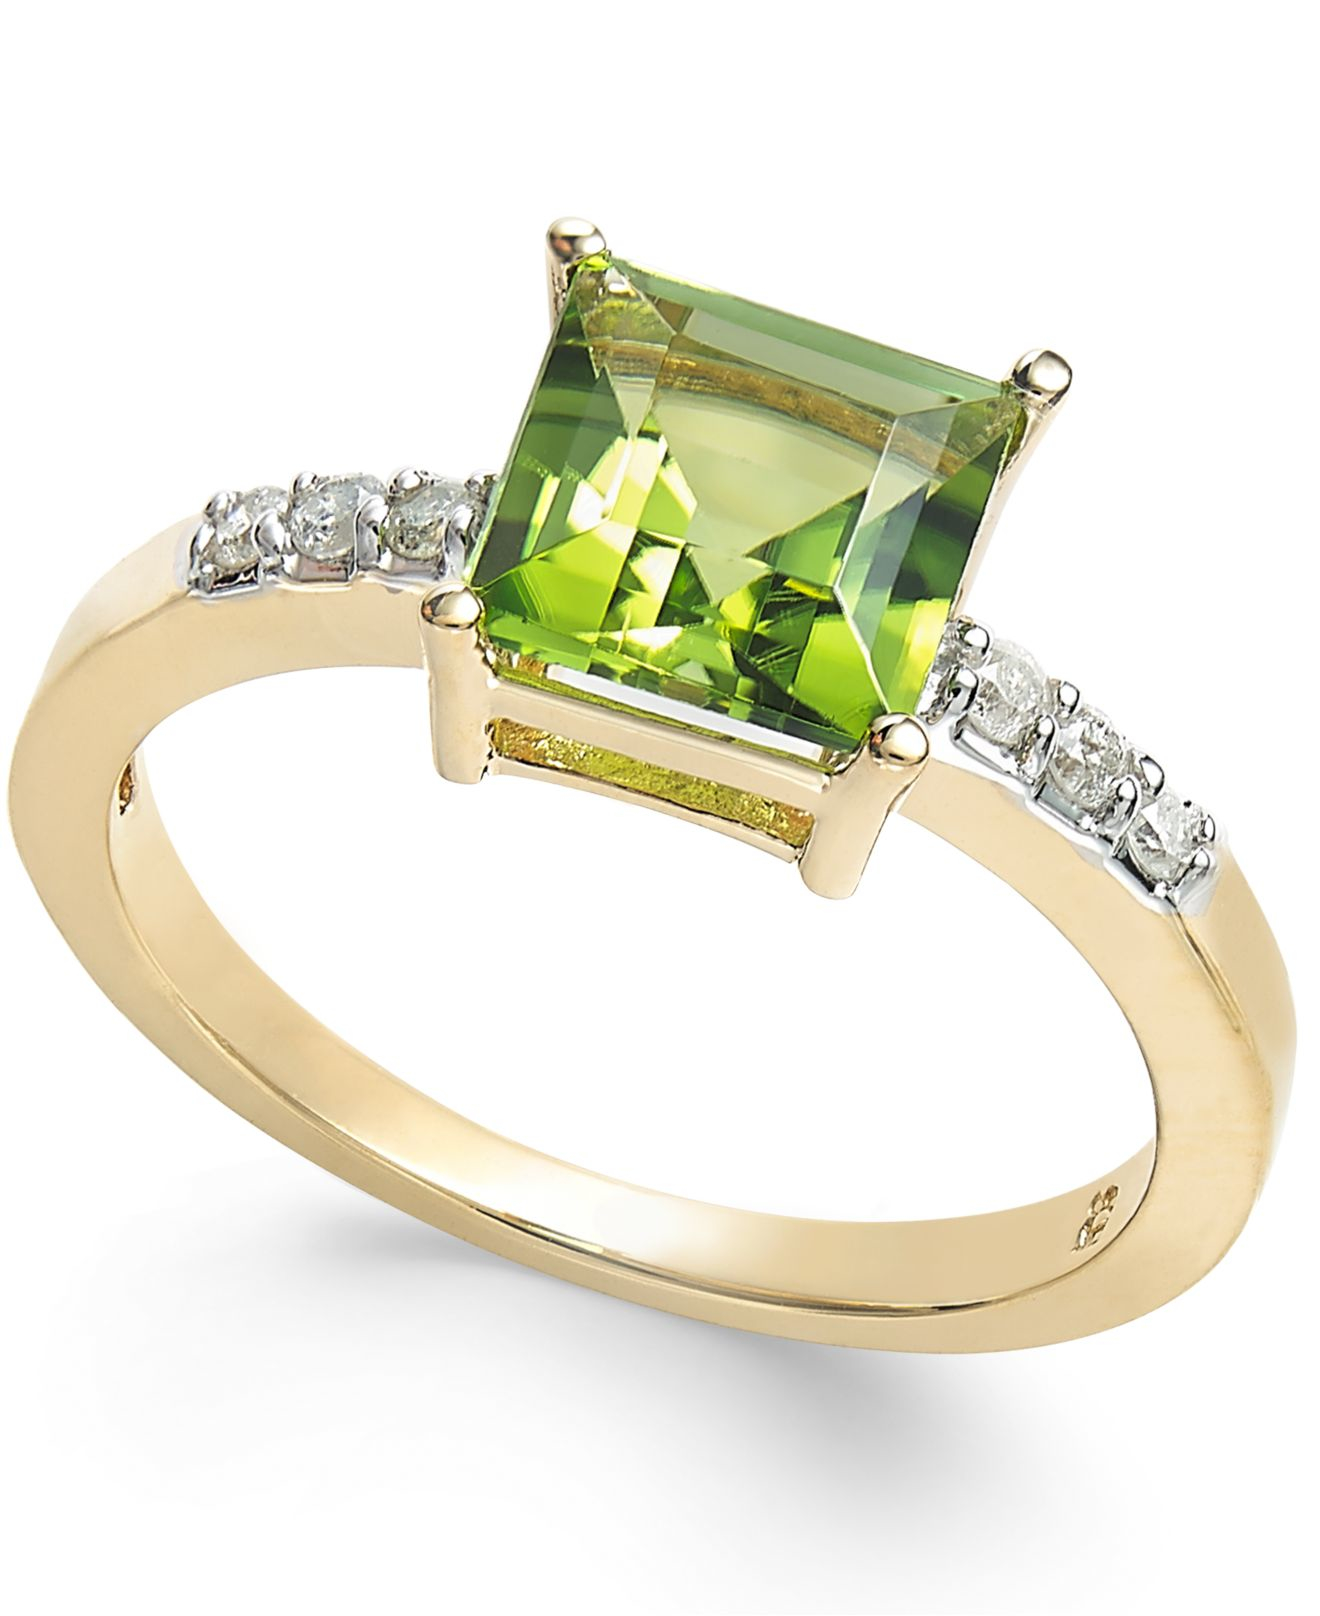 Macy s Peridot 1 3 4 Ct T w And Diamond Accent Ring In 14k Gold in Go